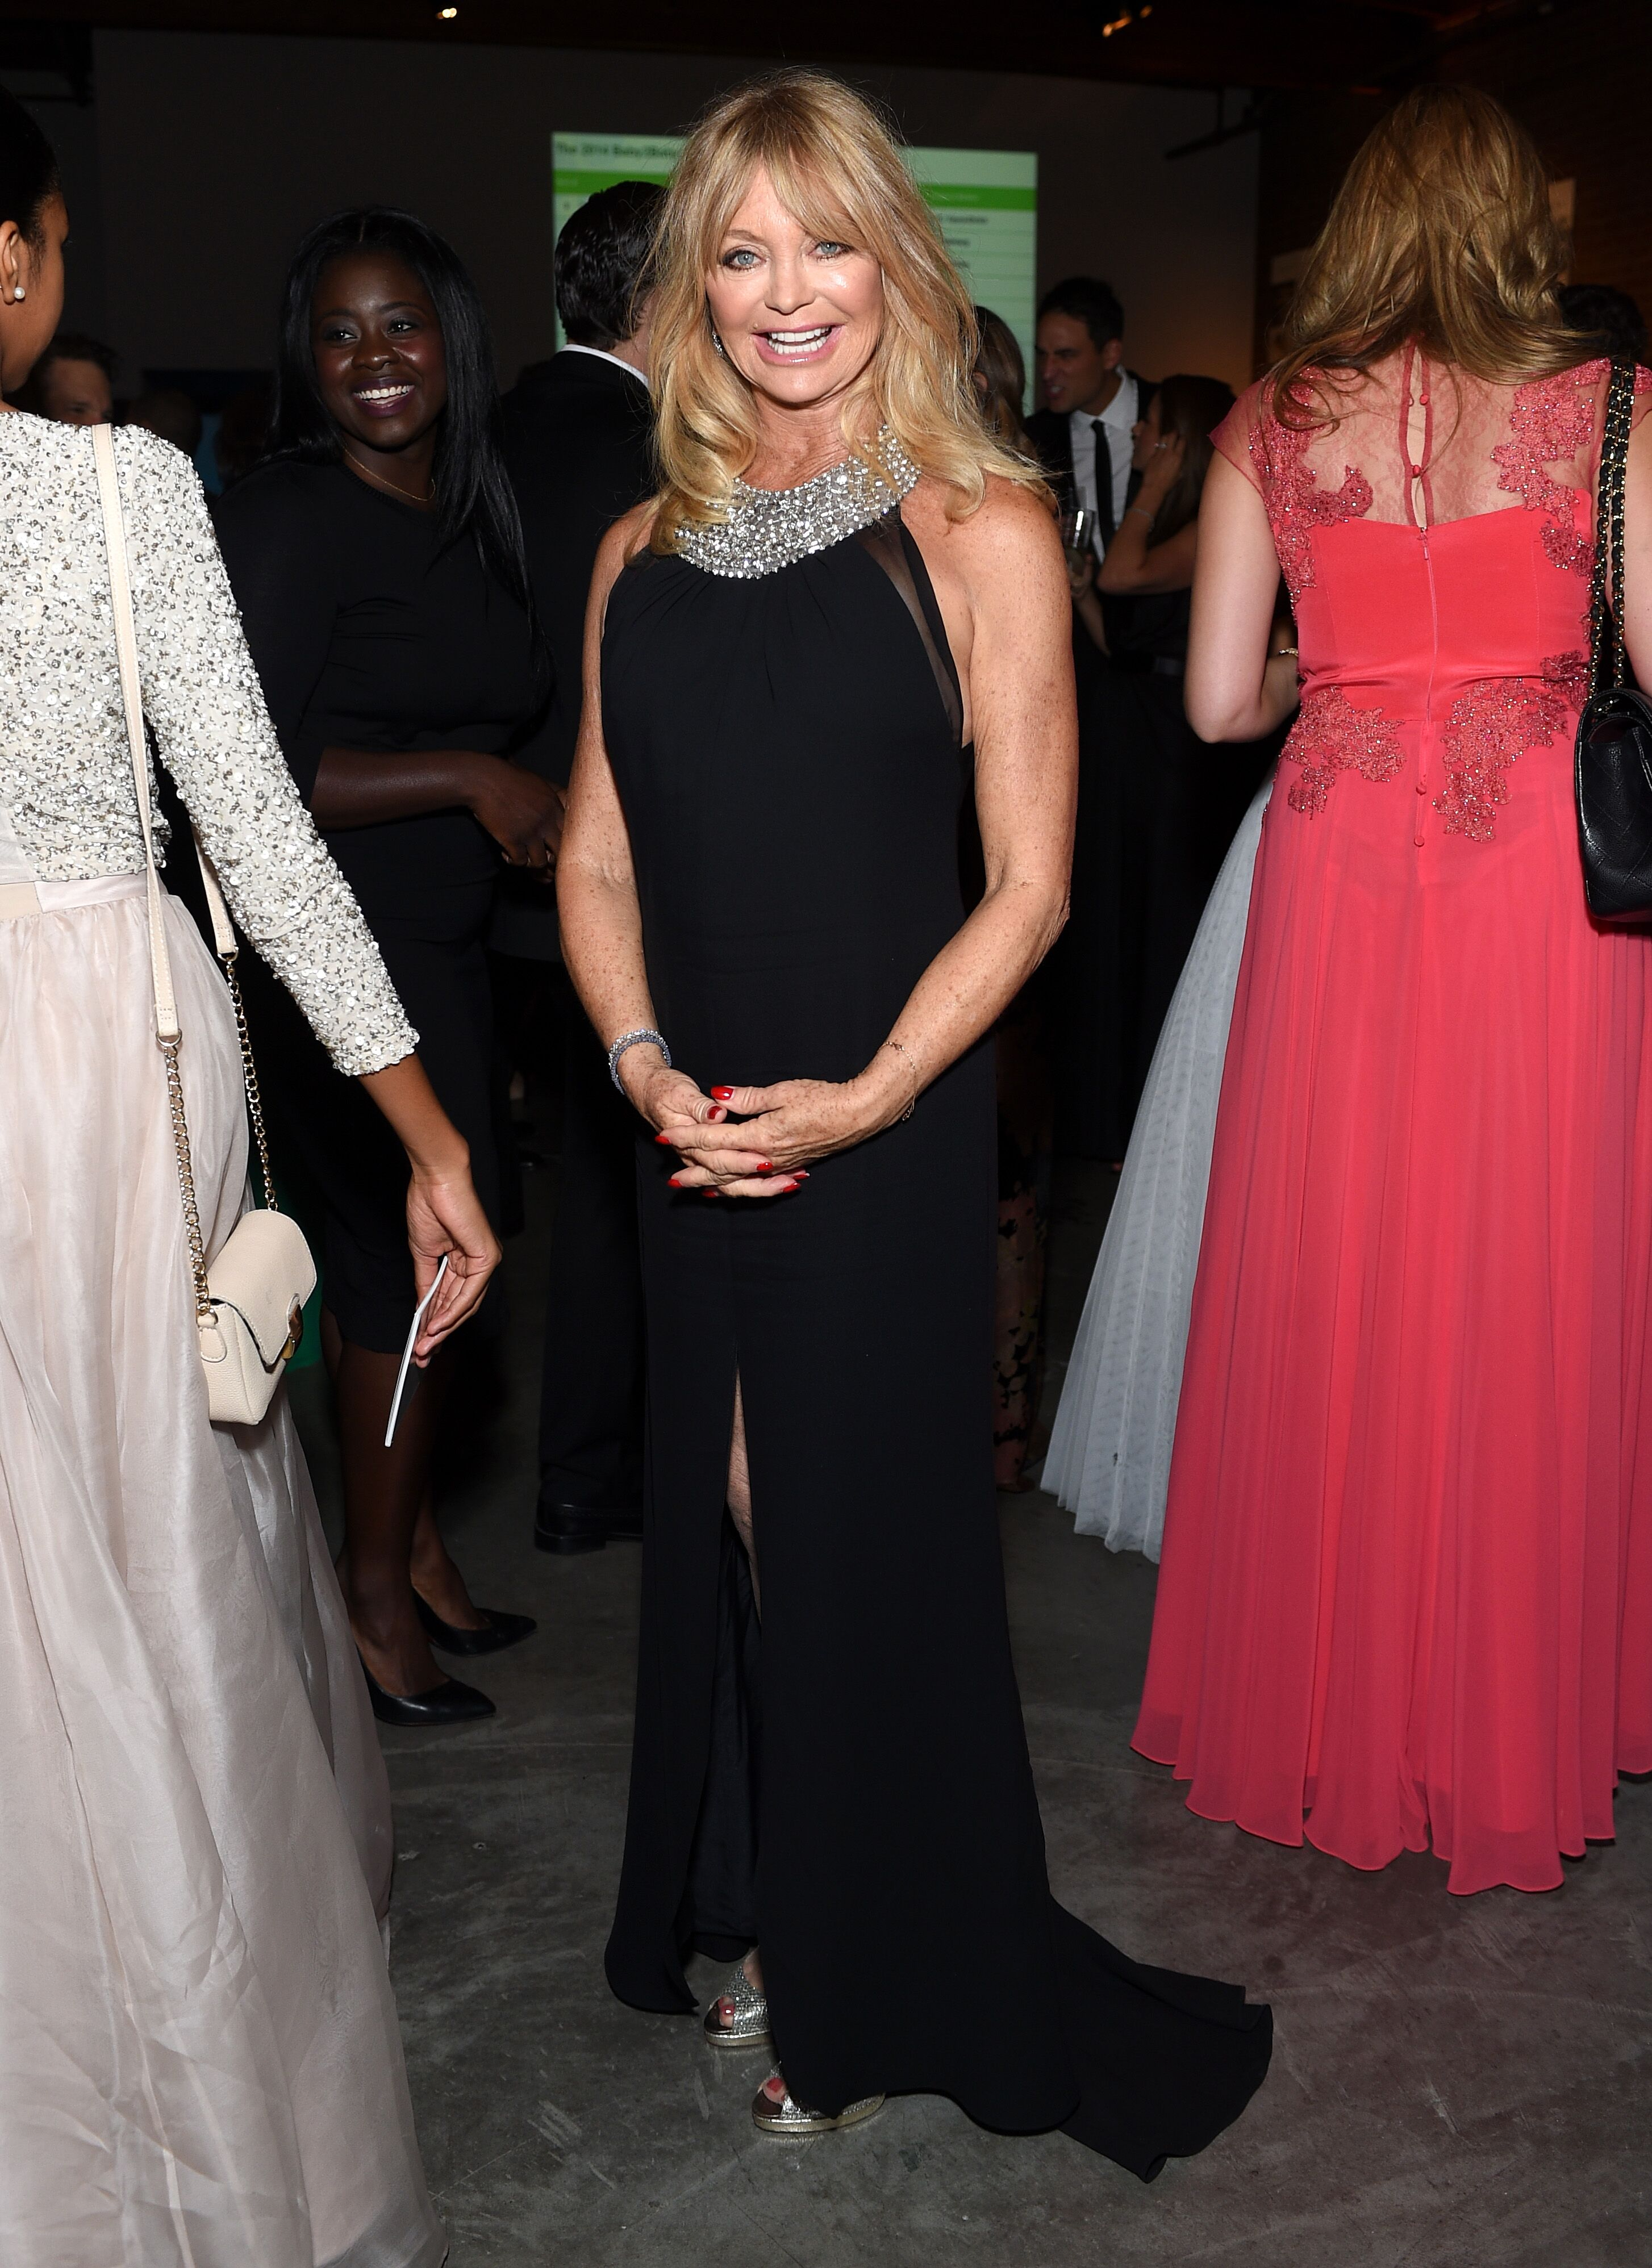 Goldie Hawn attends the 2014 Baby2Baby Gala, presented by Tiffany & Co. | Source: Getty Images